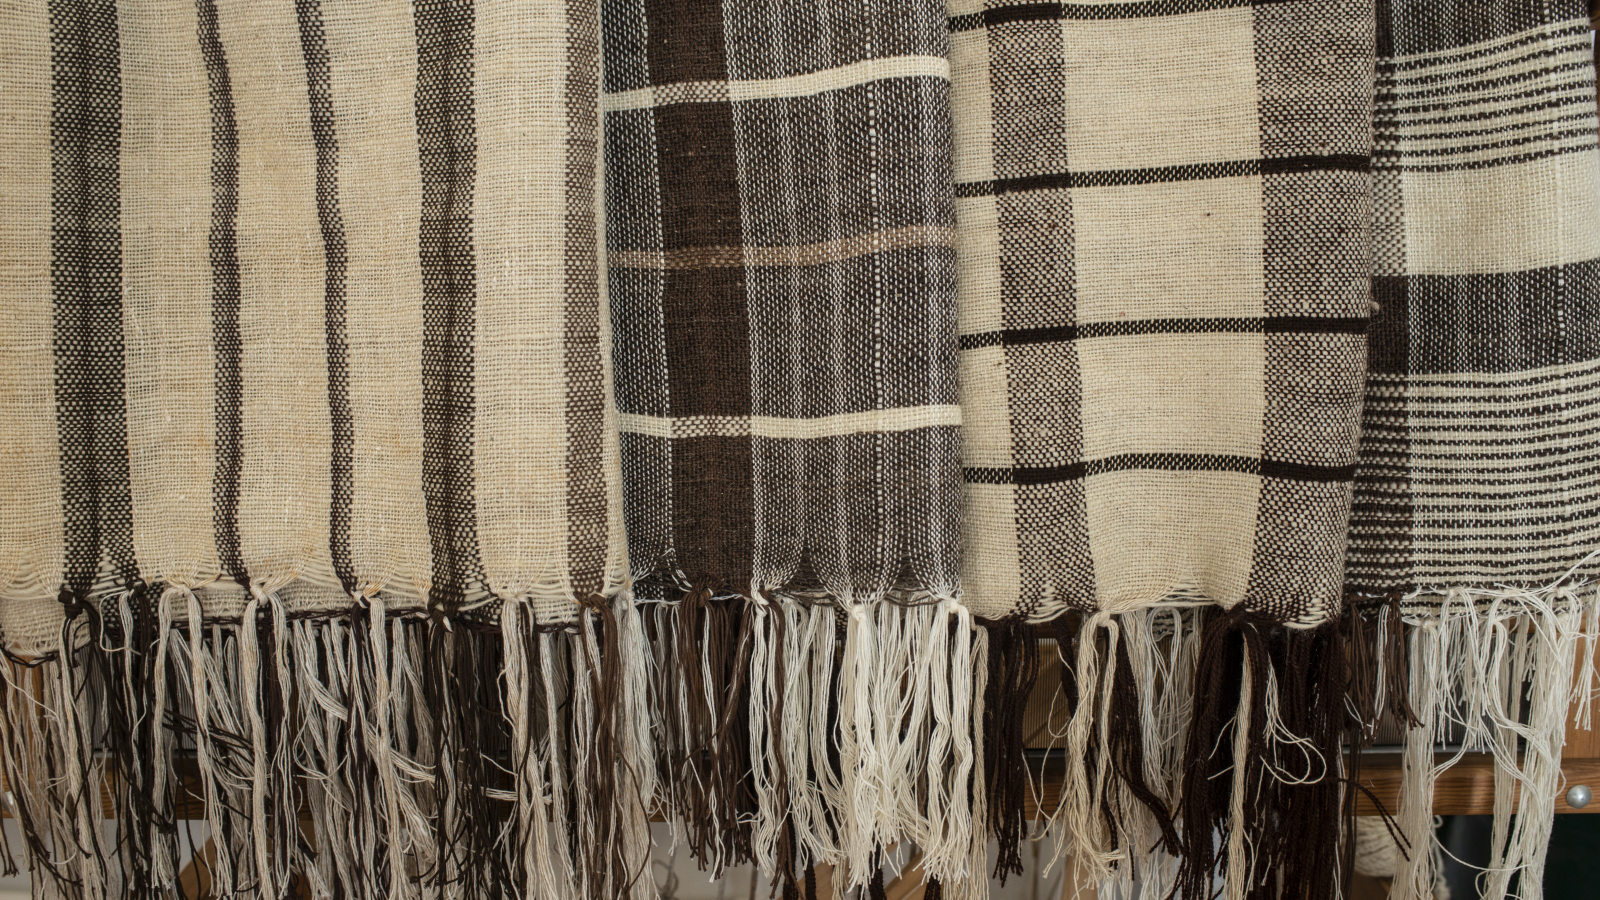 Scarfs produced from Amasia wool